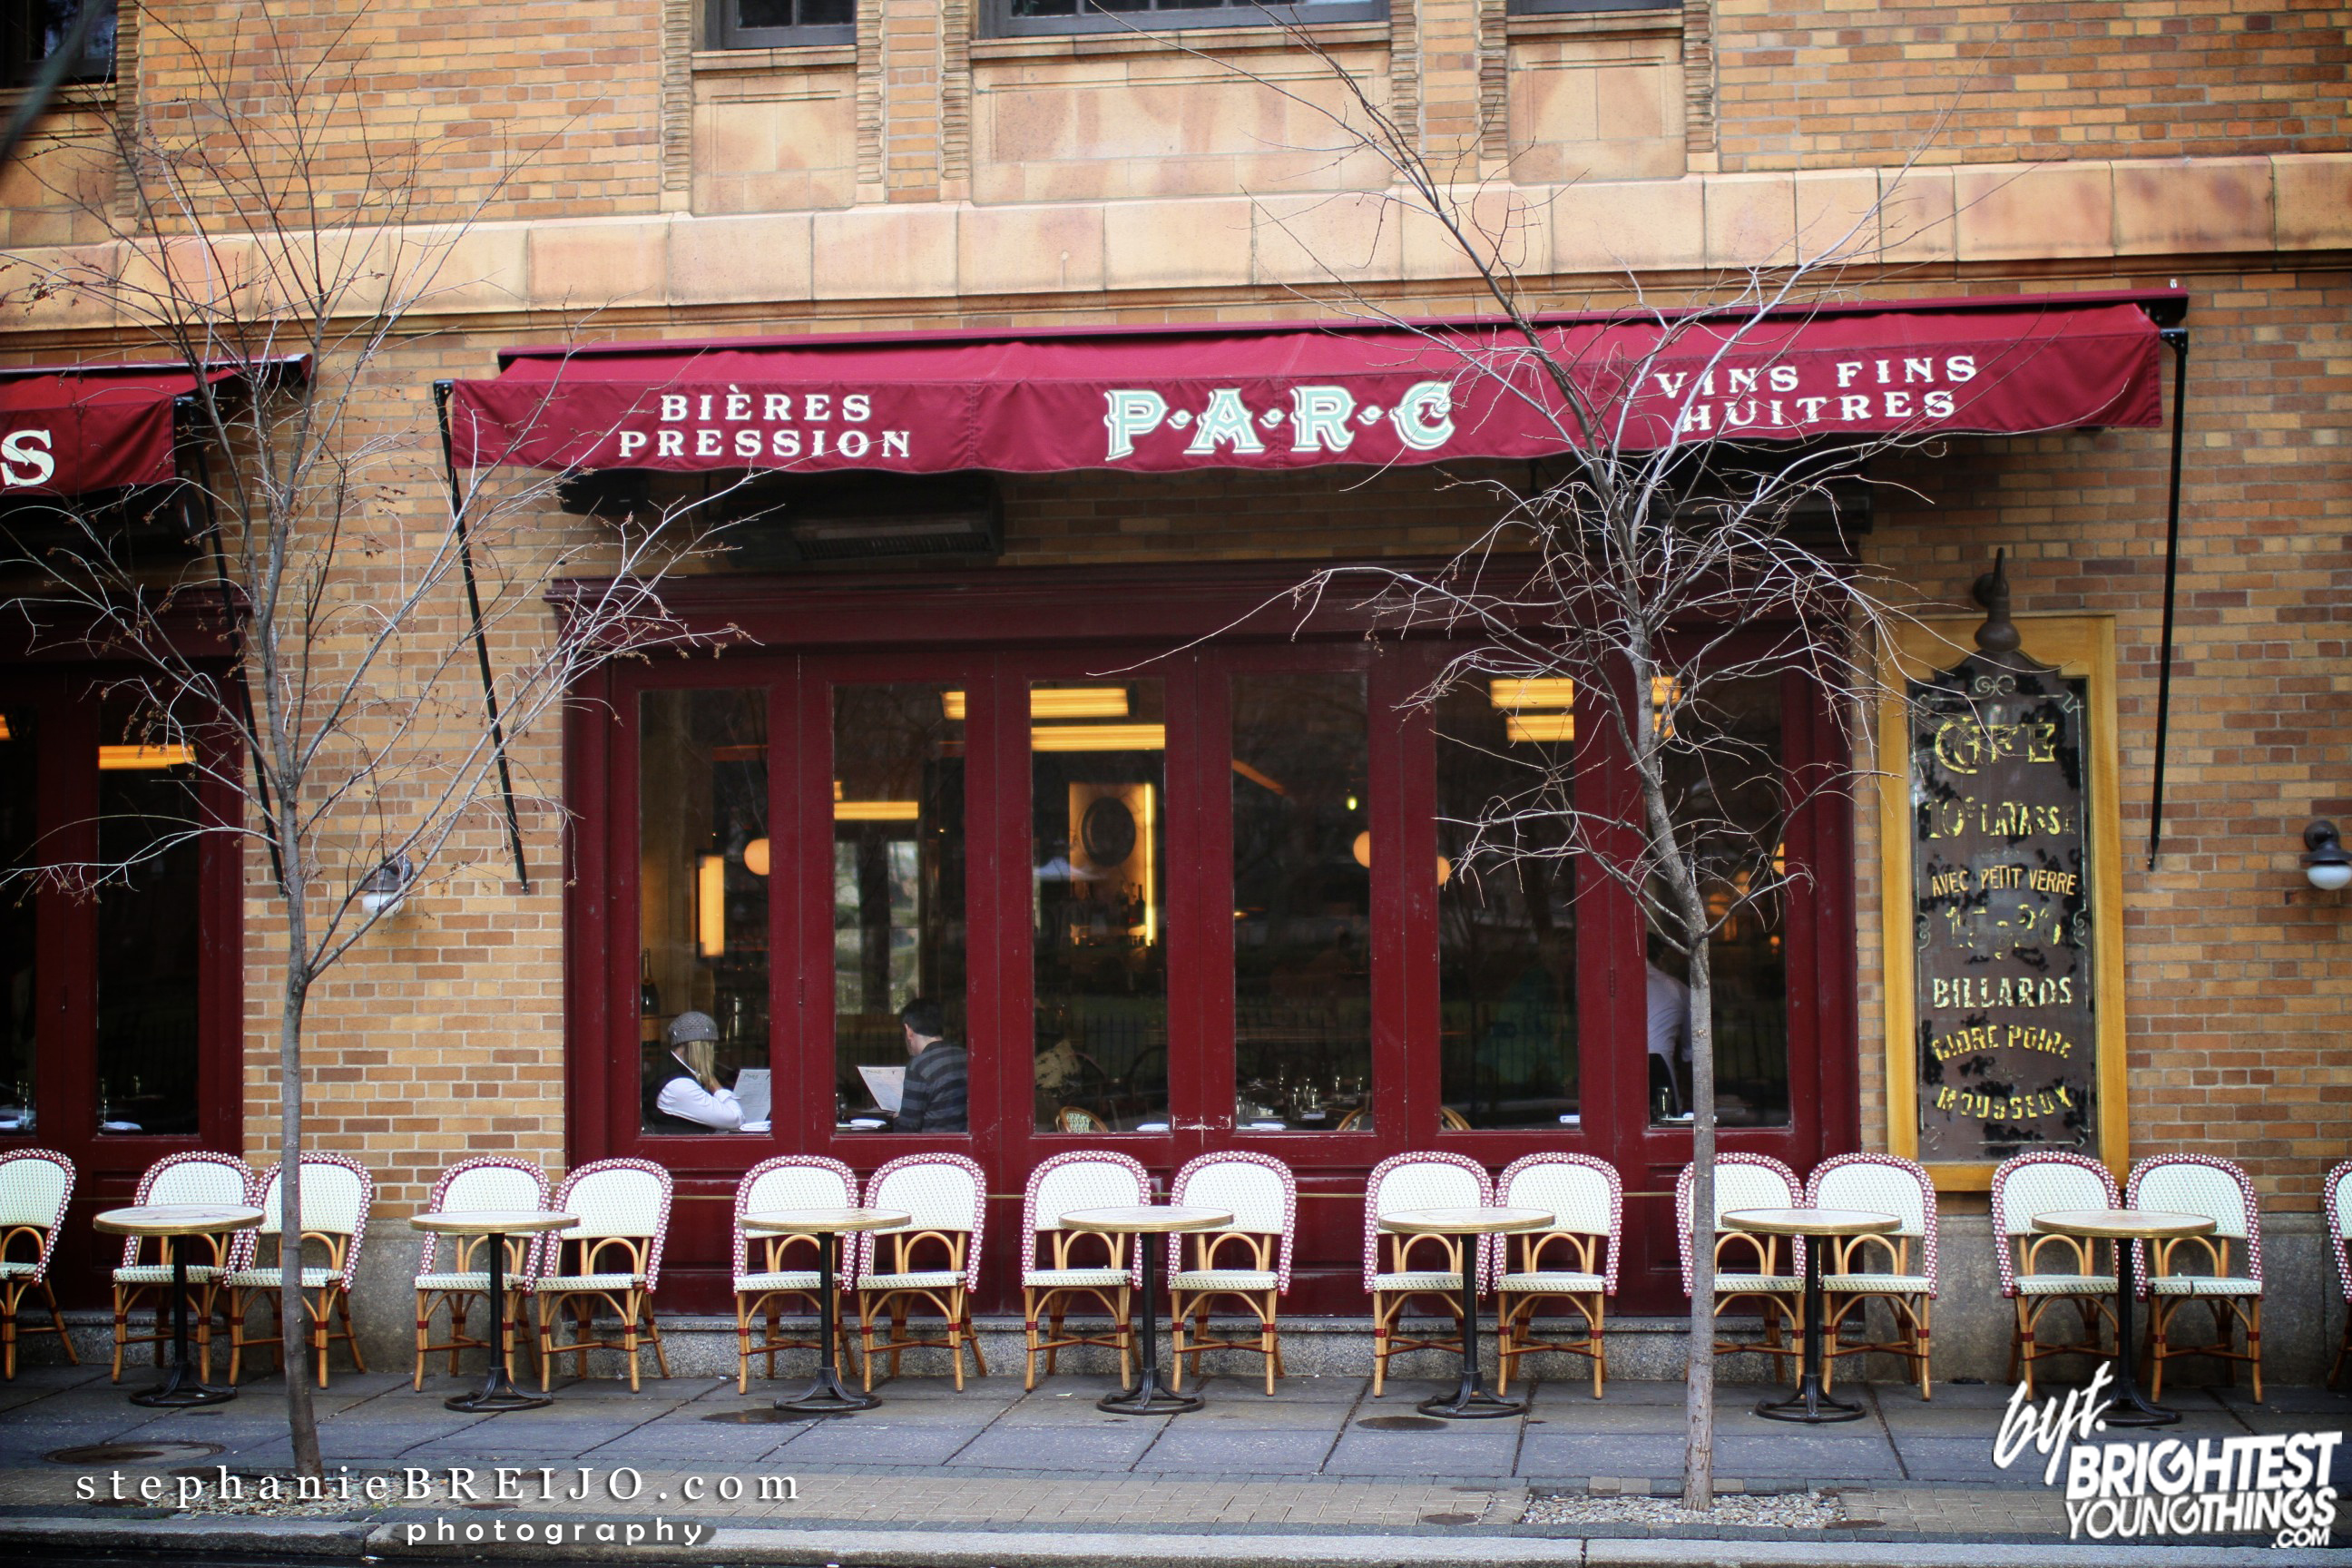 Verres À Biere Ambiance Et Style the rising starr of the dc food scene ⋆ byt // brightest